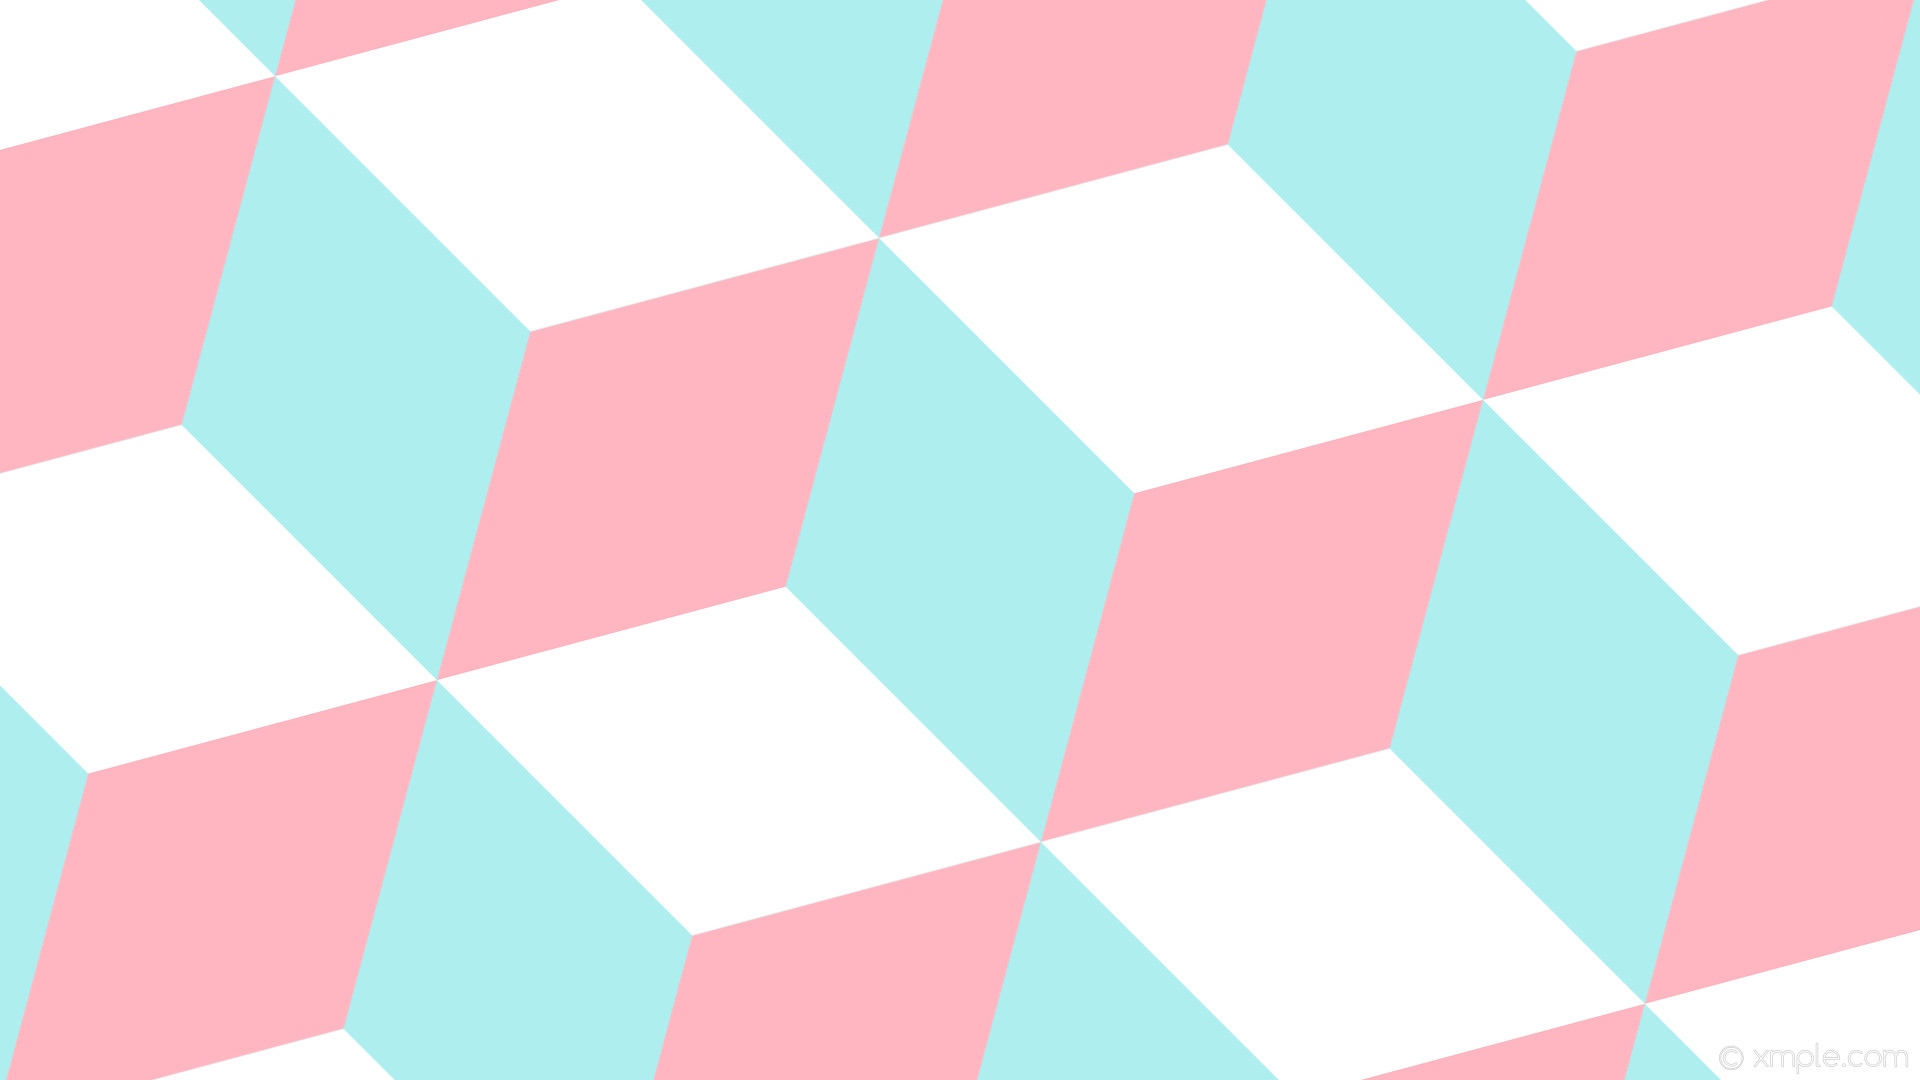 Res: 1920x1080, wallpaper 3d cubes blue white pink pale turquoise light pink #afeeee  #ffb6c1 #ffffff